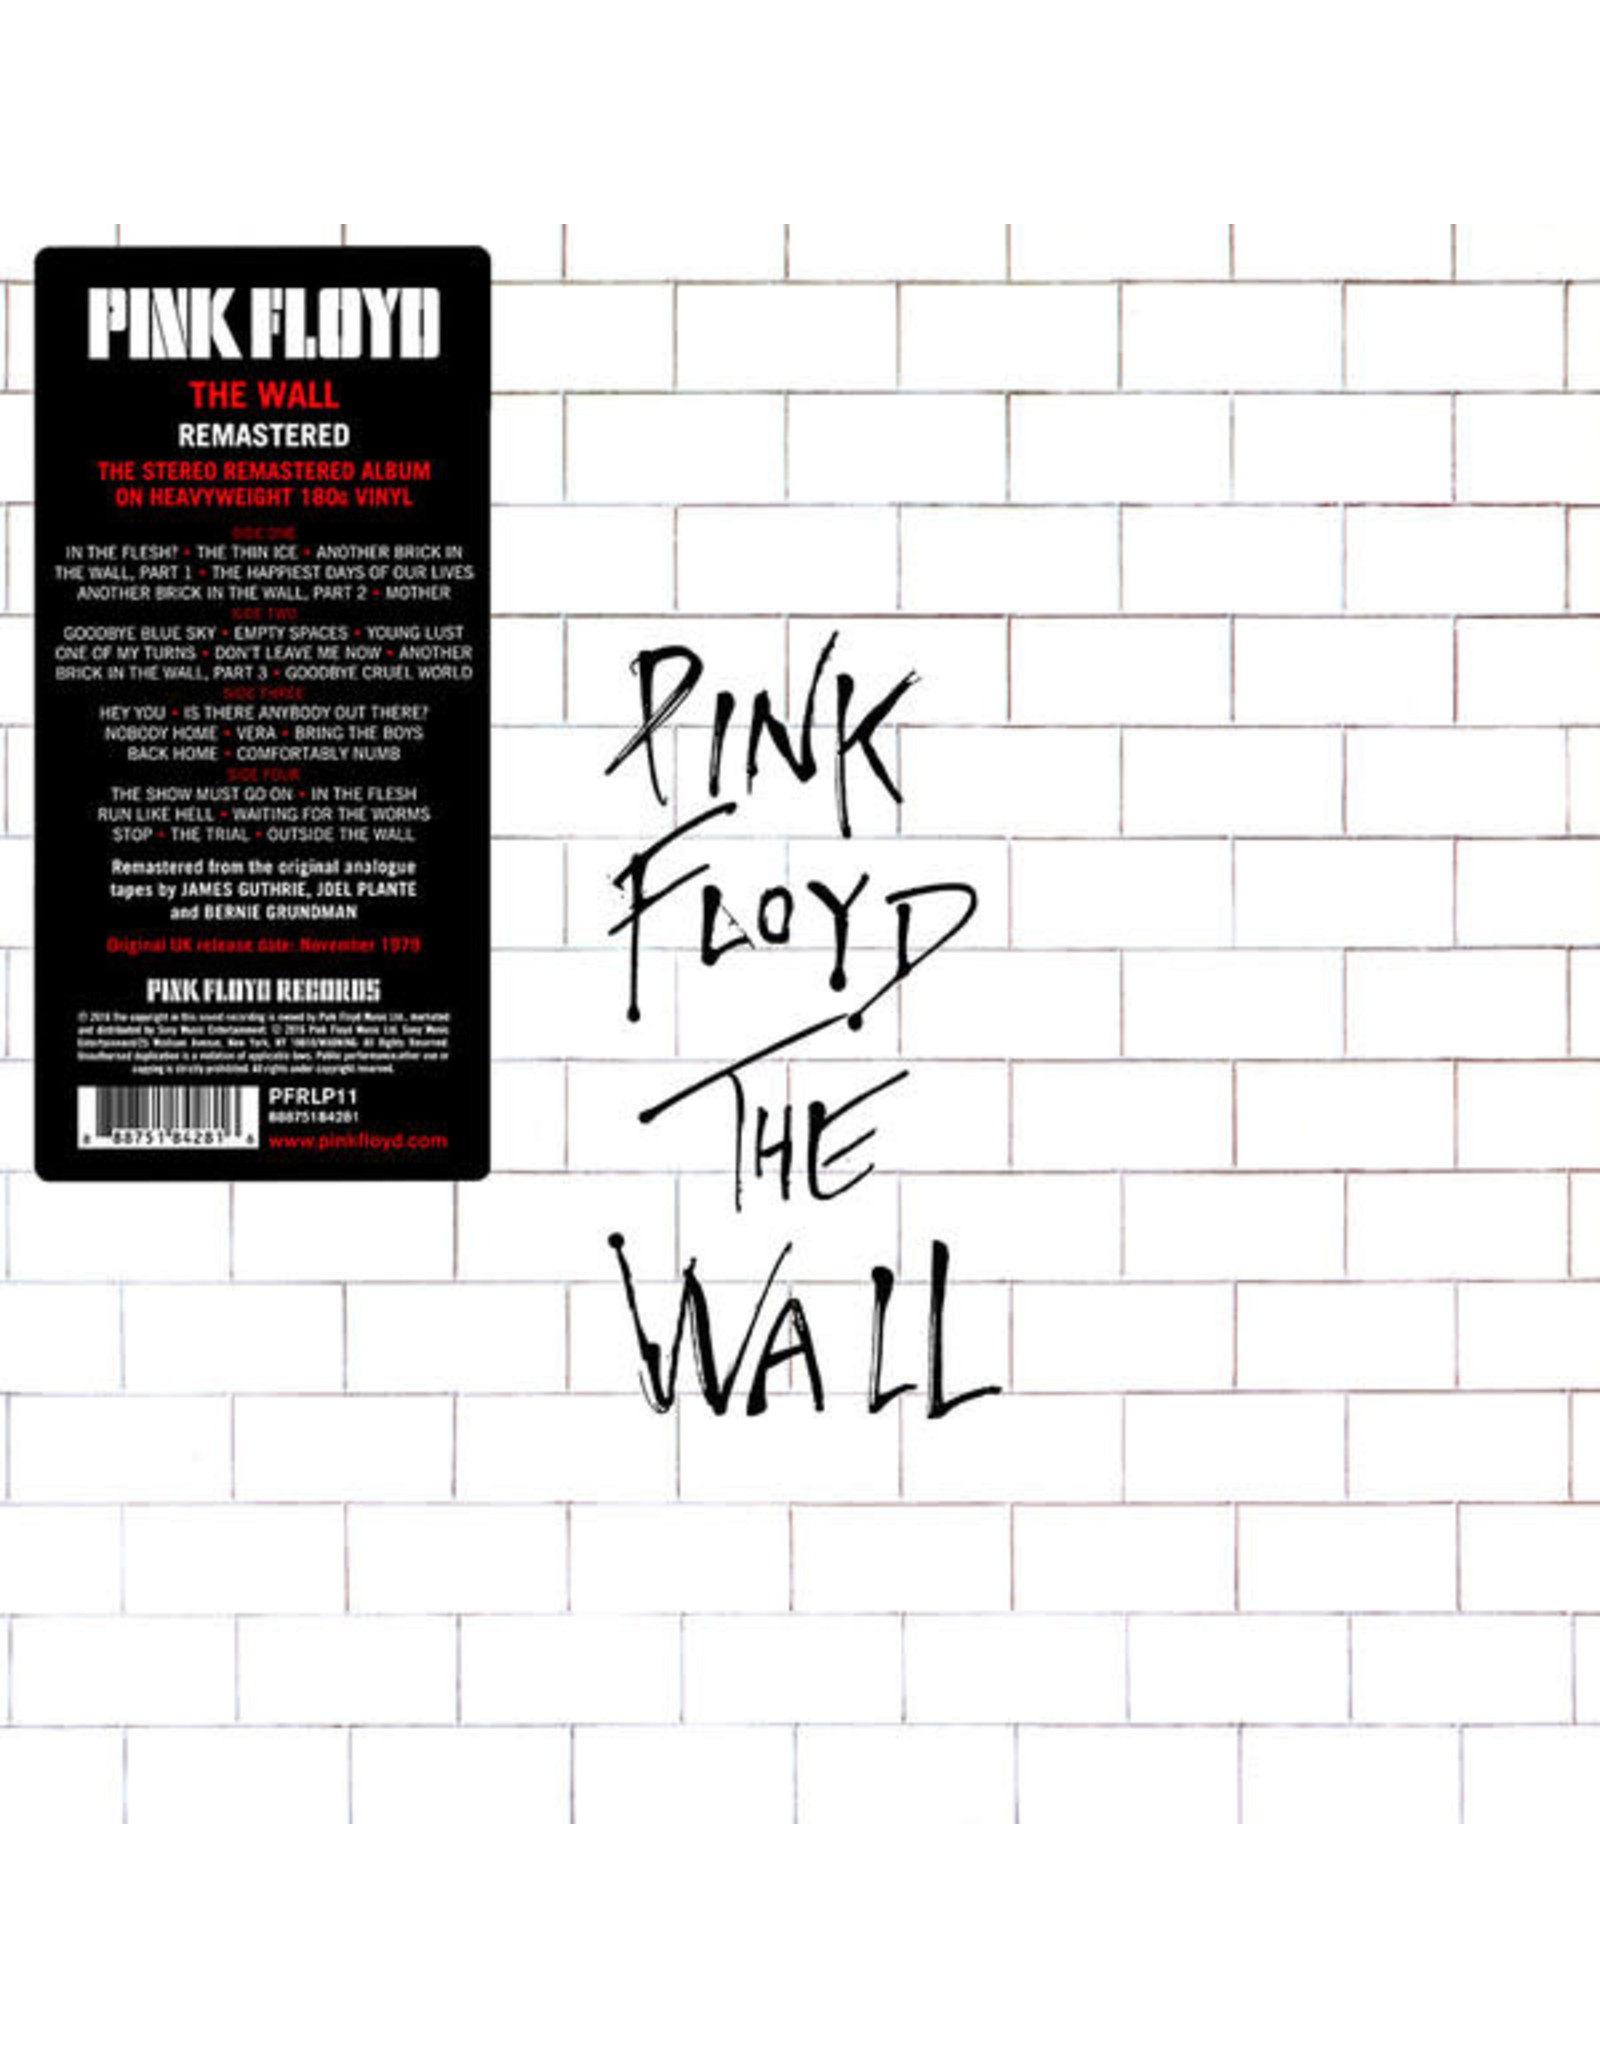 Pink Floyd - The Wall LP